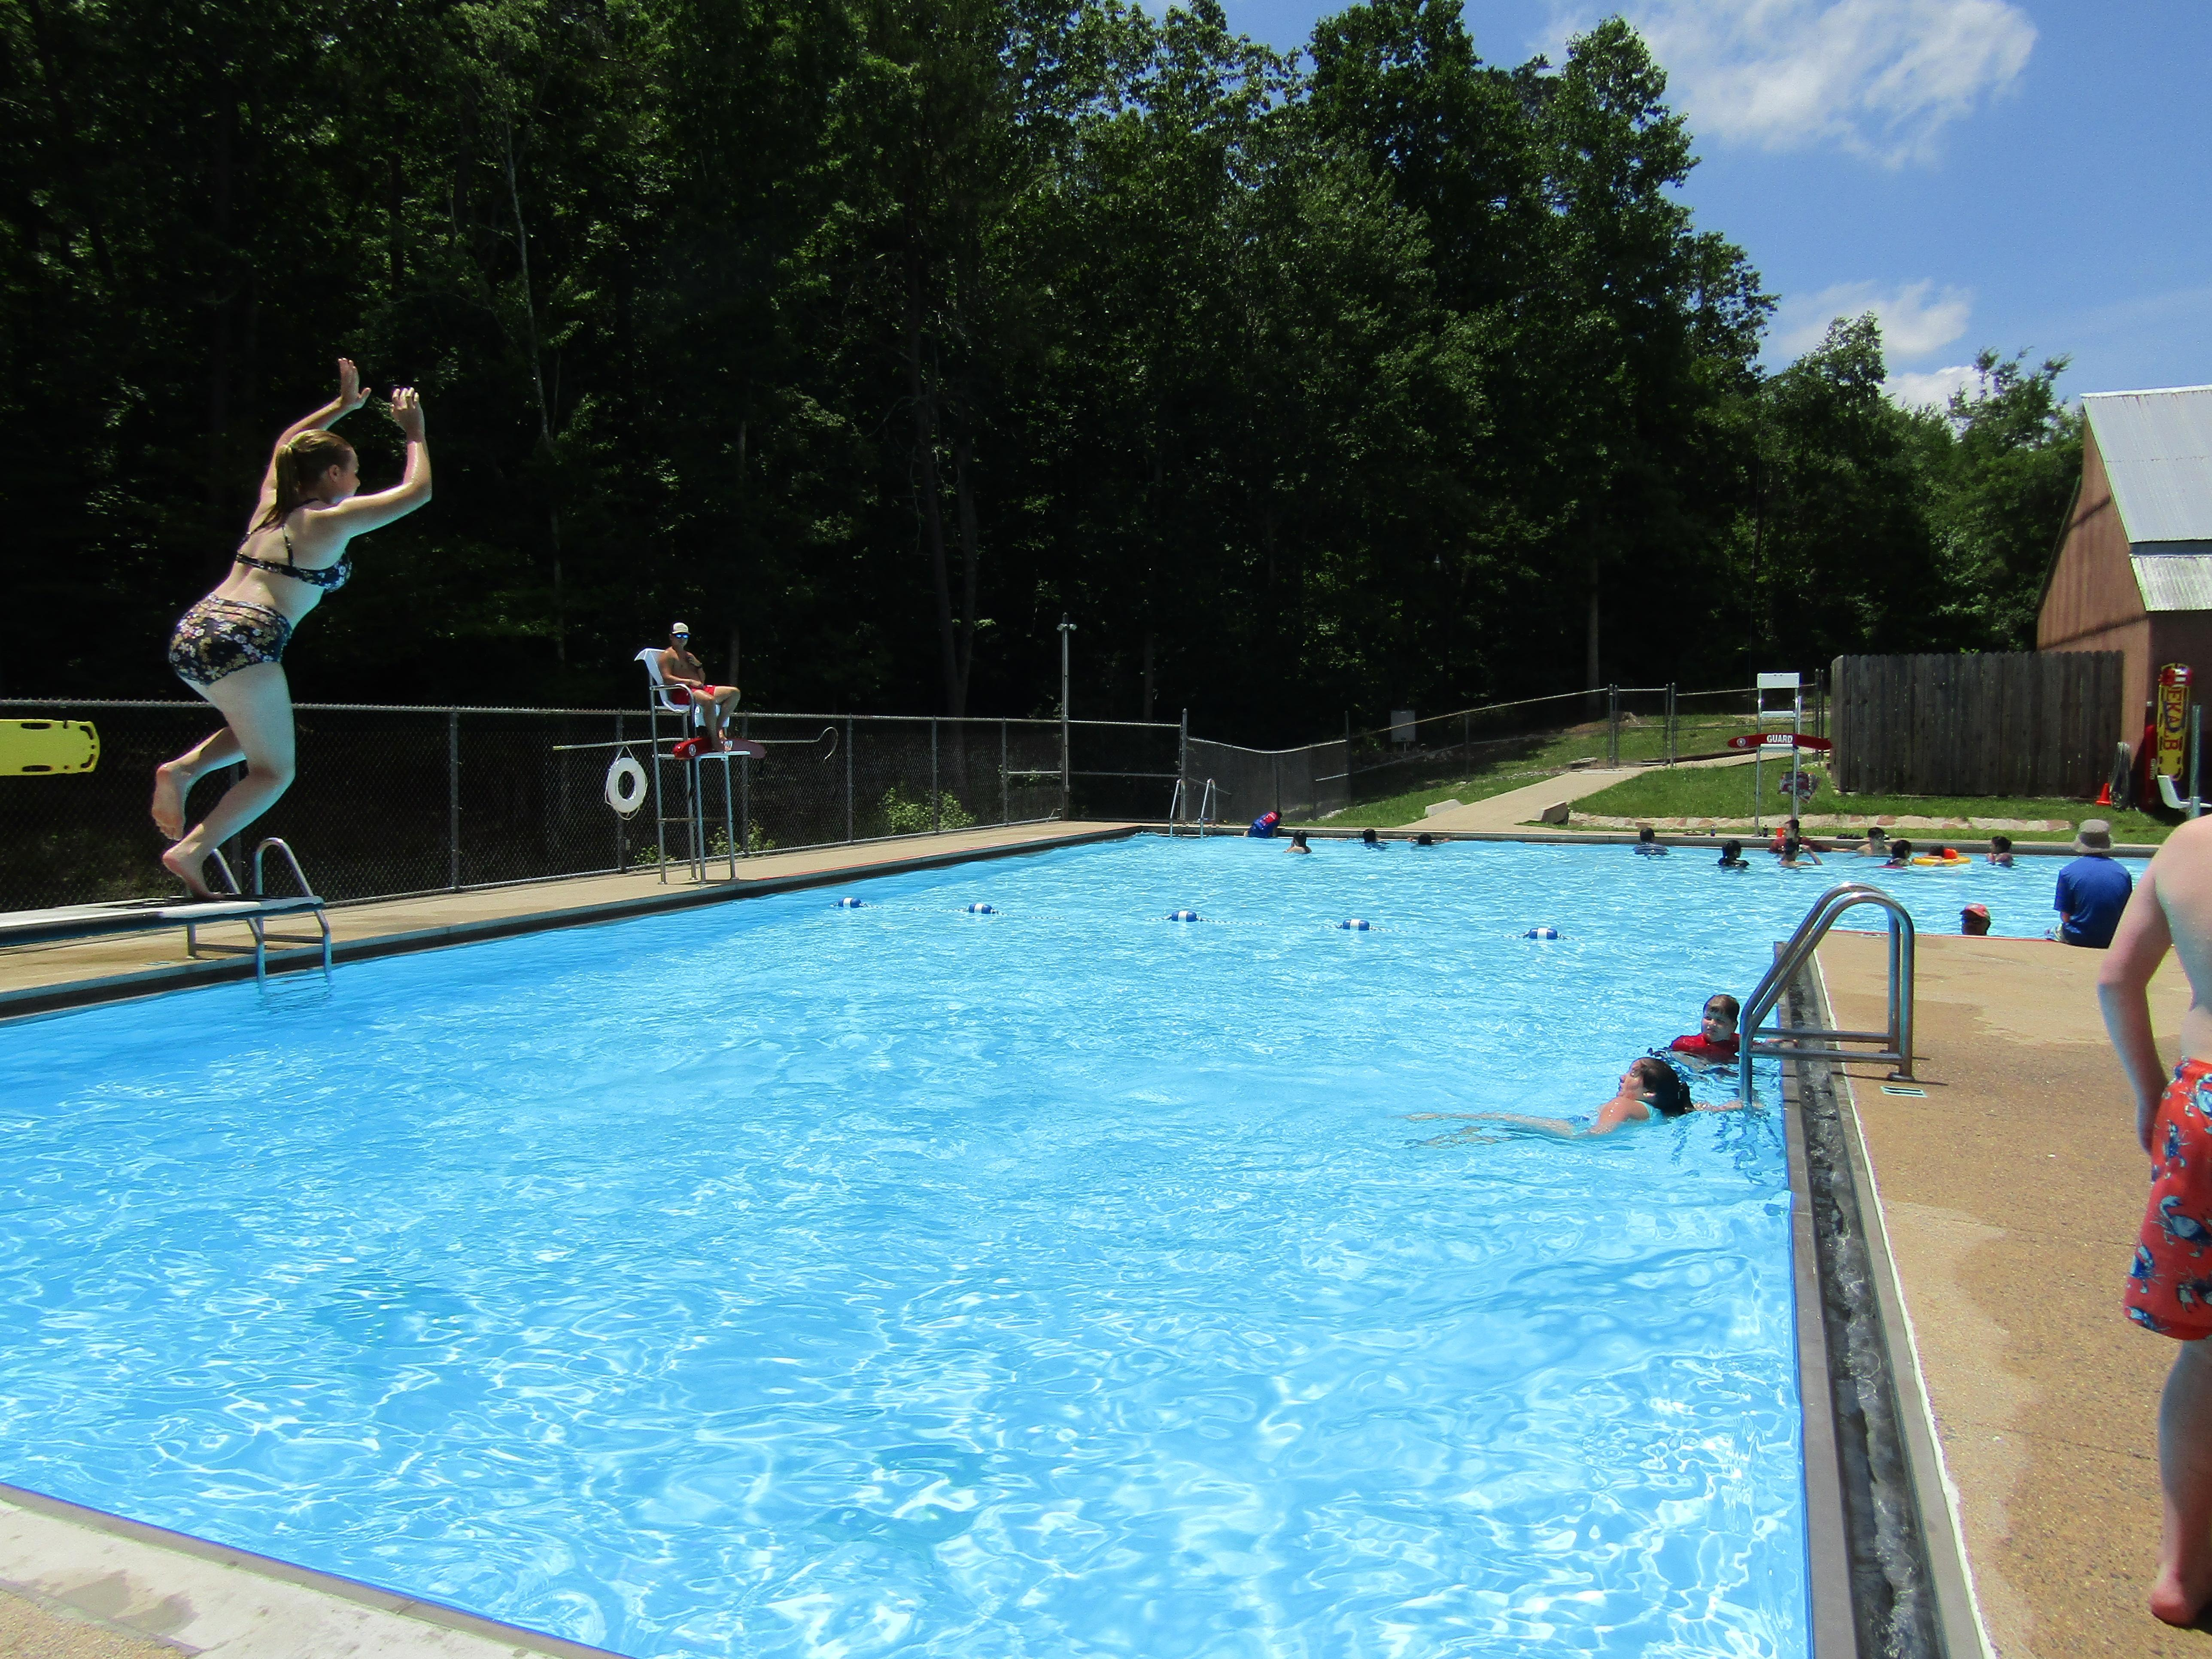 DSP Swimming Pool Diving Board